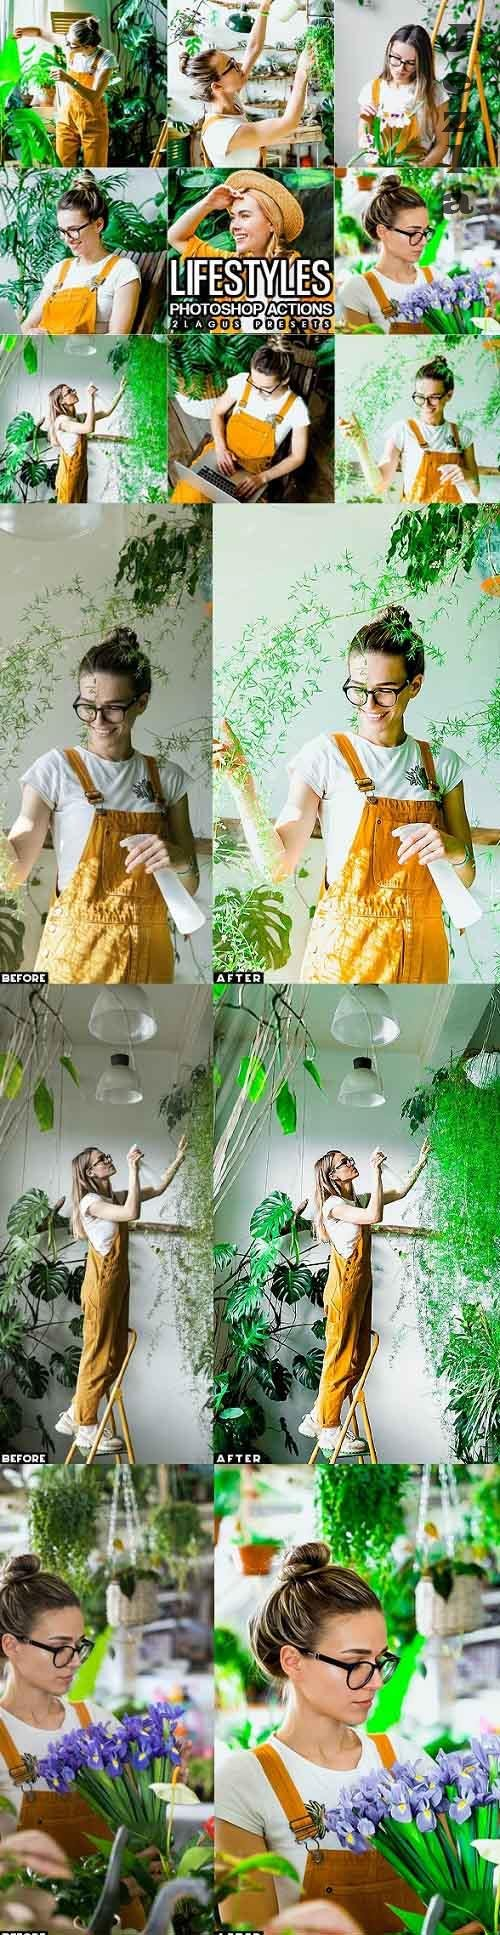 Clean Life Styles Photoshop Actions - 29858474